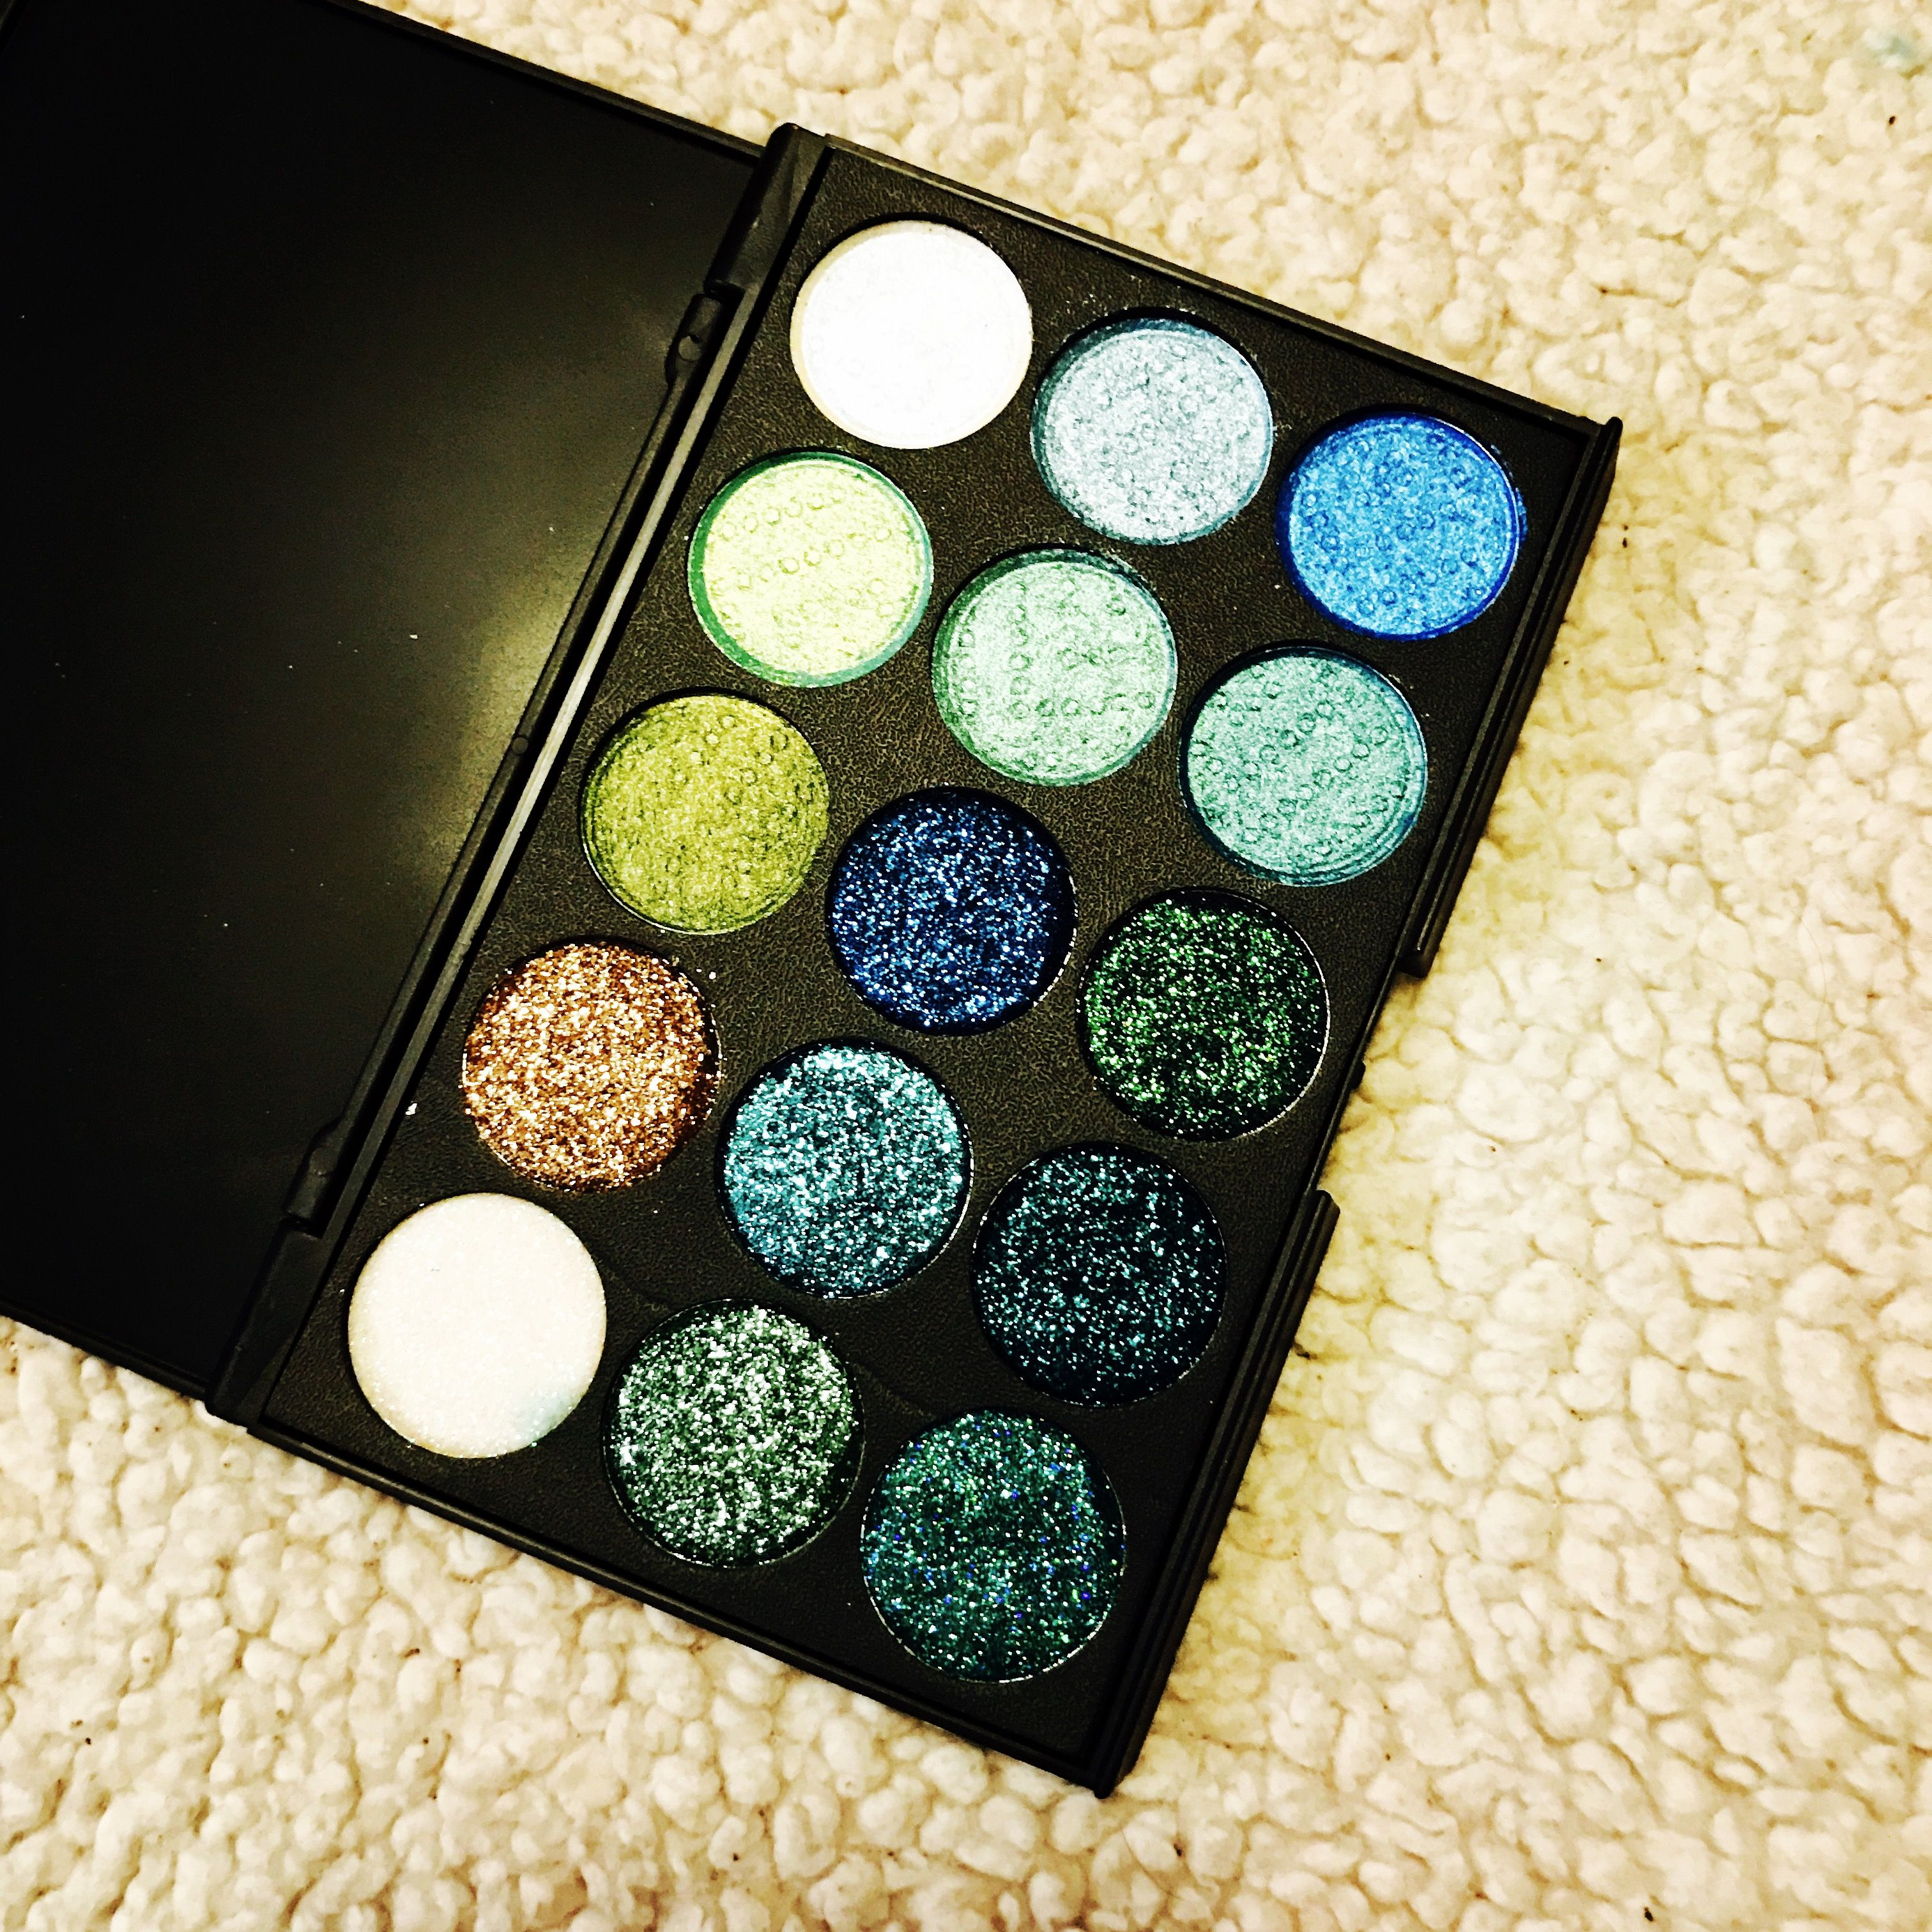 Pin by Monique Boulé on Eyeshadow Palettes Eyeshadow